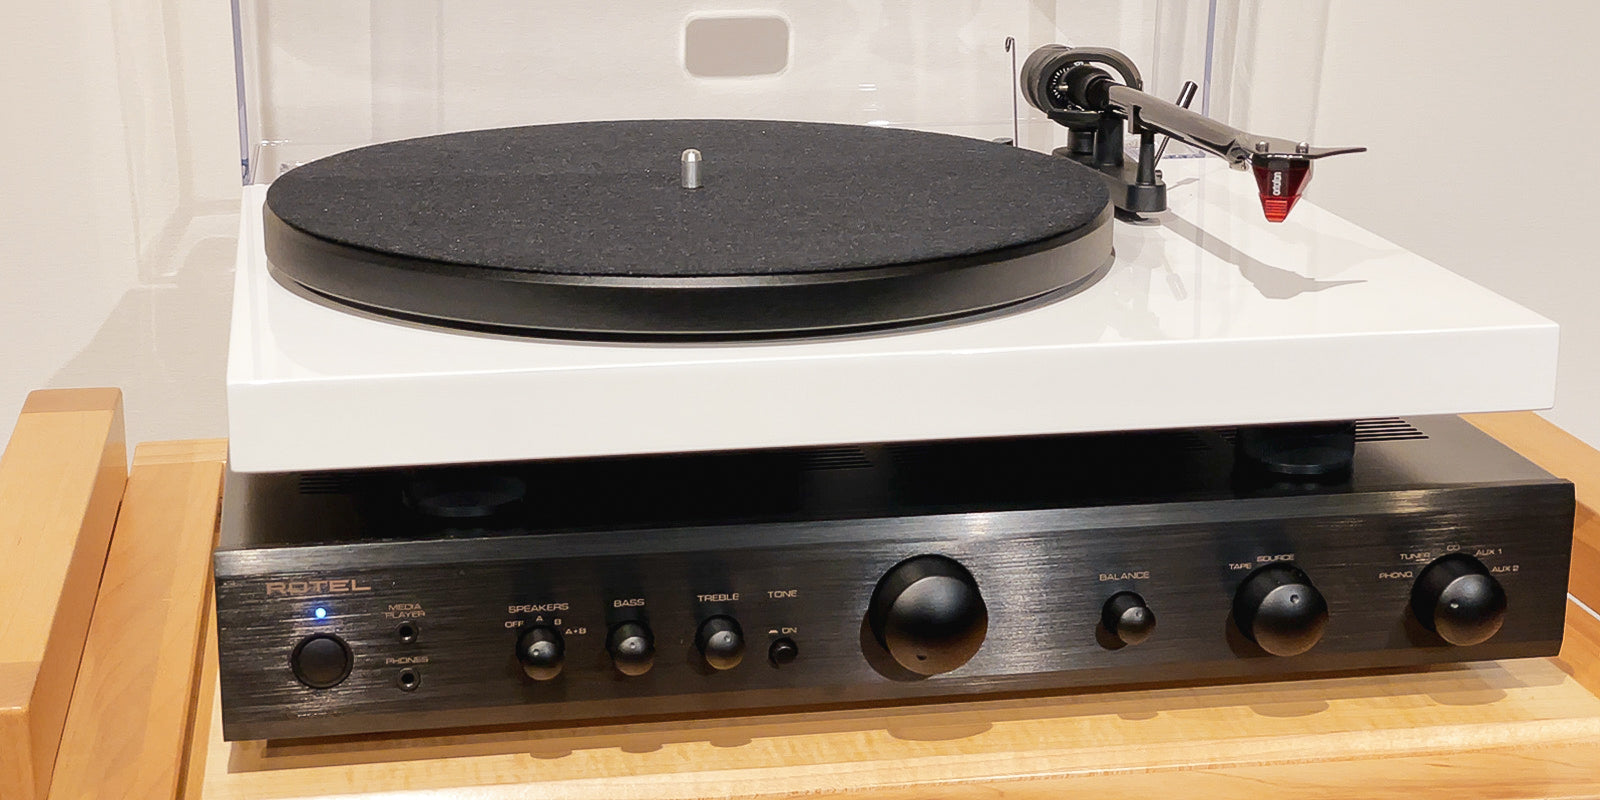 Rotel A10 integrated amplifier and Project carbon evo turntable